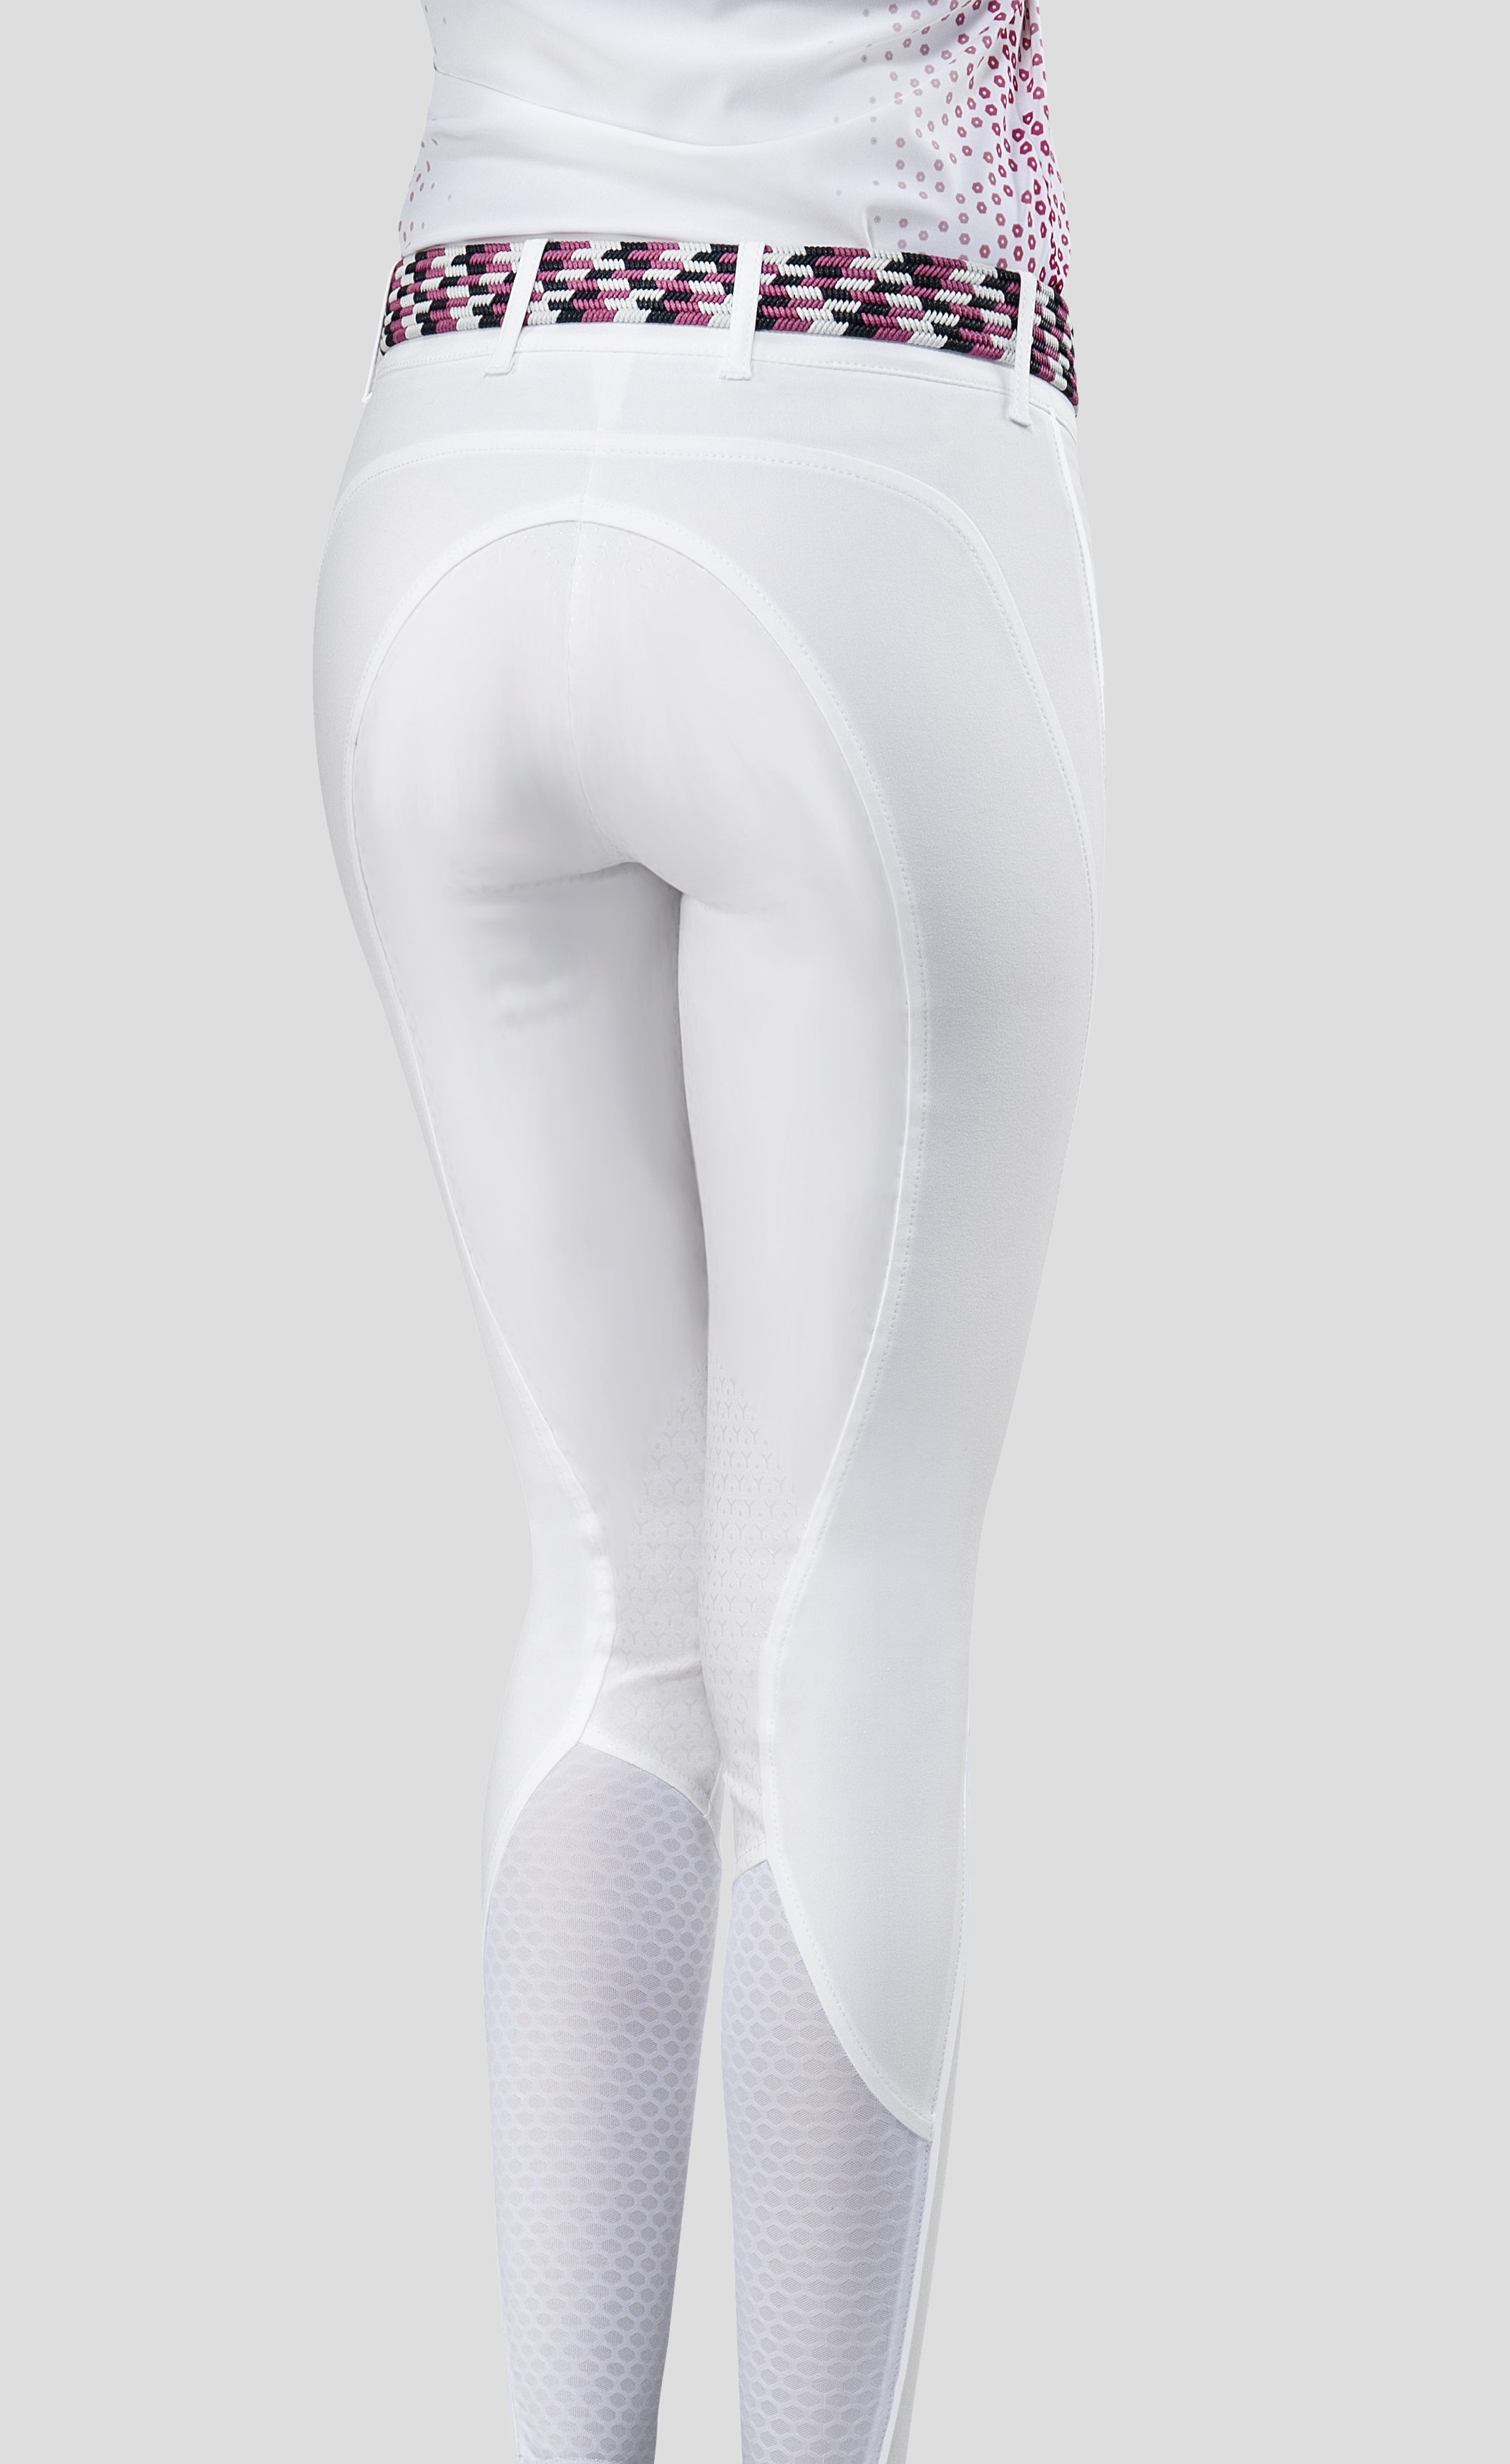 CAMILA KNEE GRIP BREECHES 7